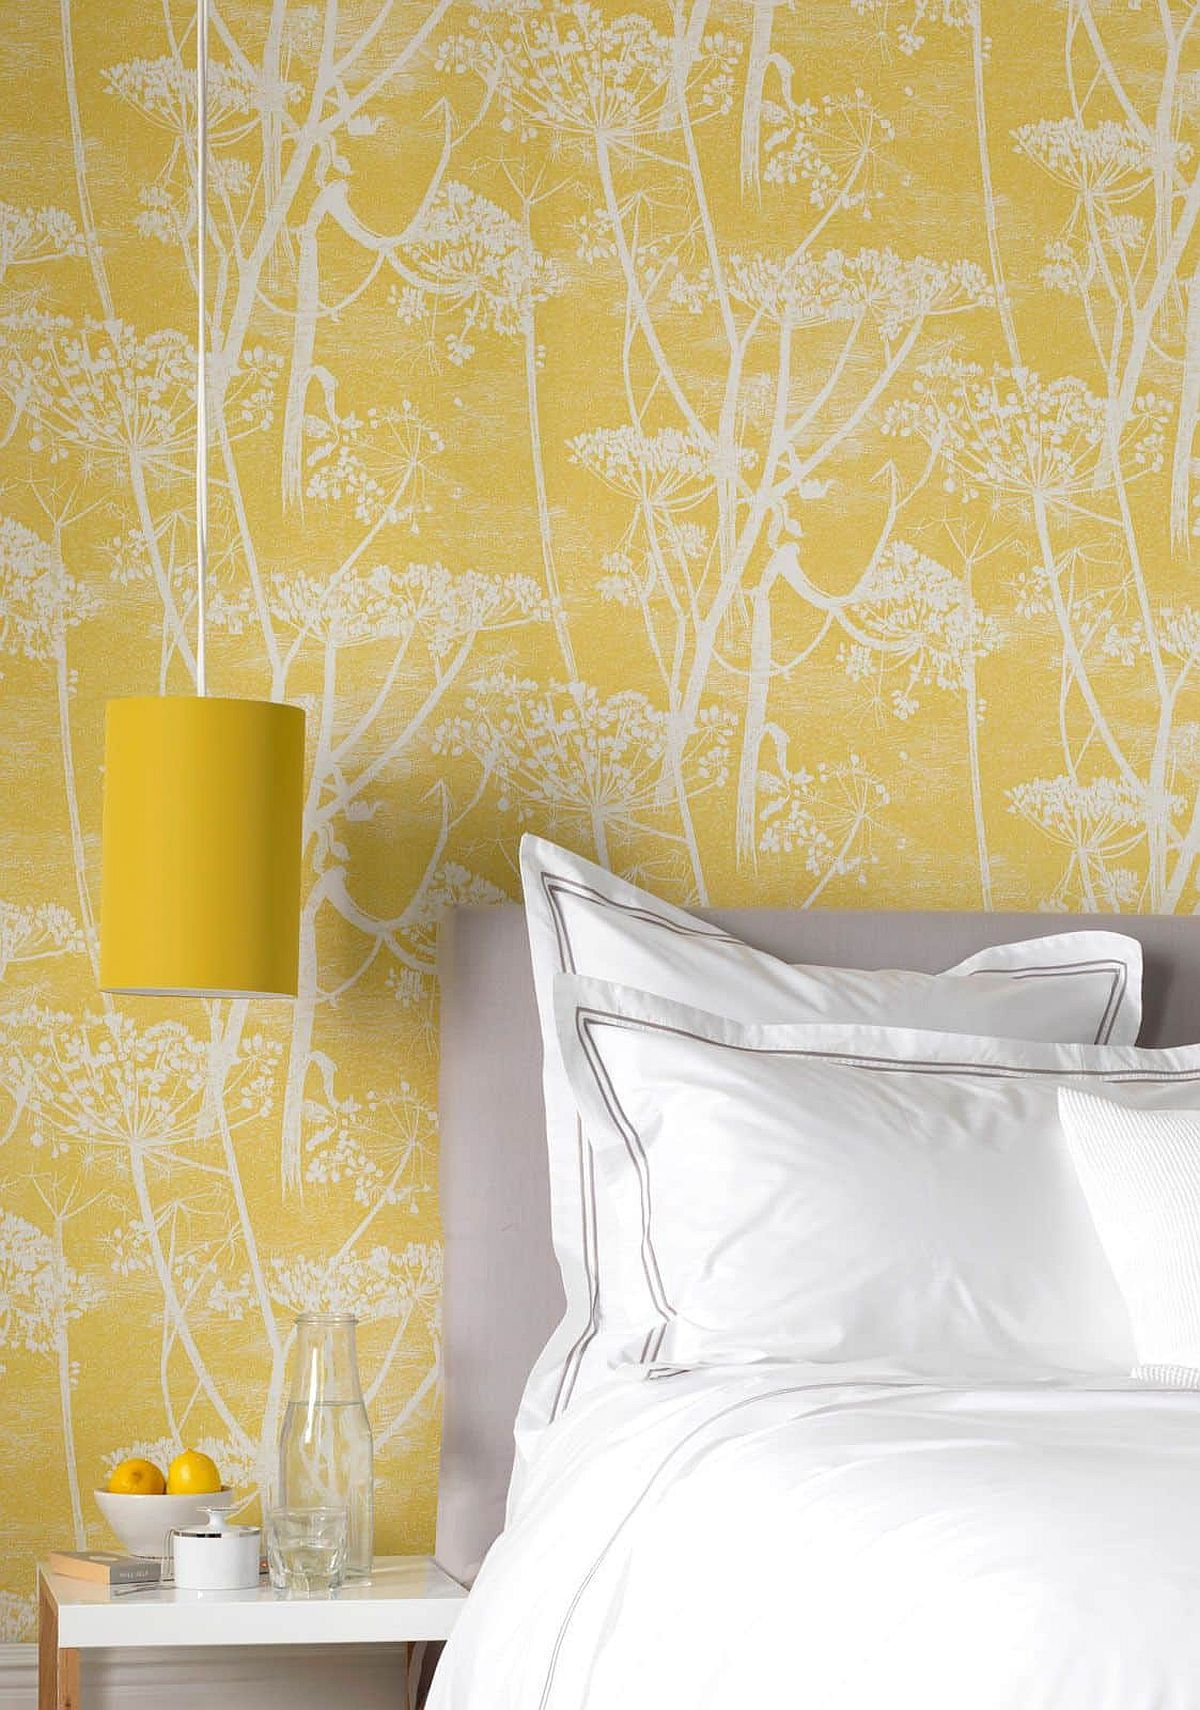 Wallpaper-brings-yellow-to-the-bedroom-by-create-a-cost-effective-and-colorful-accent-wall-86160